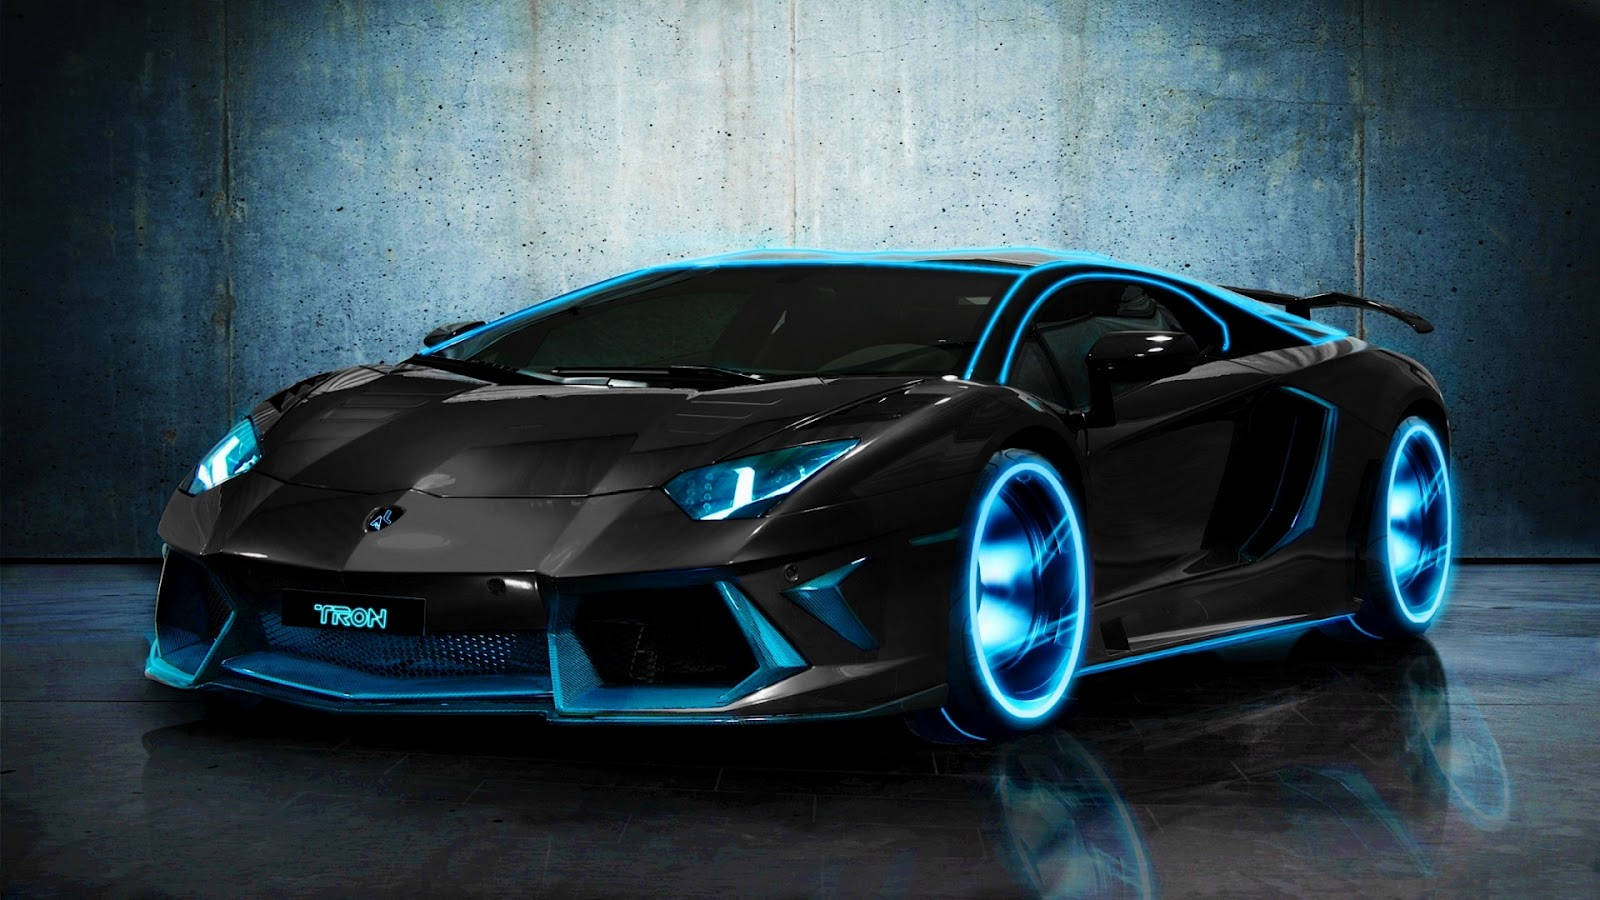 TRON Lamborghini Aventador HD car wallpapers download D i g g 1600x900